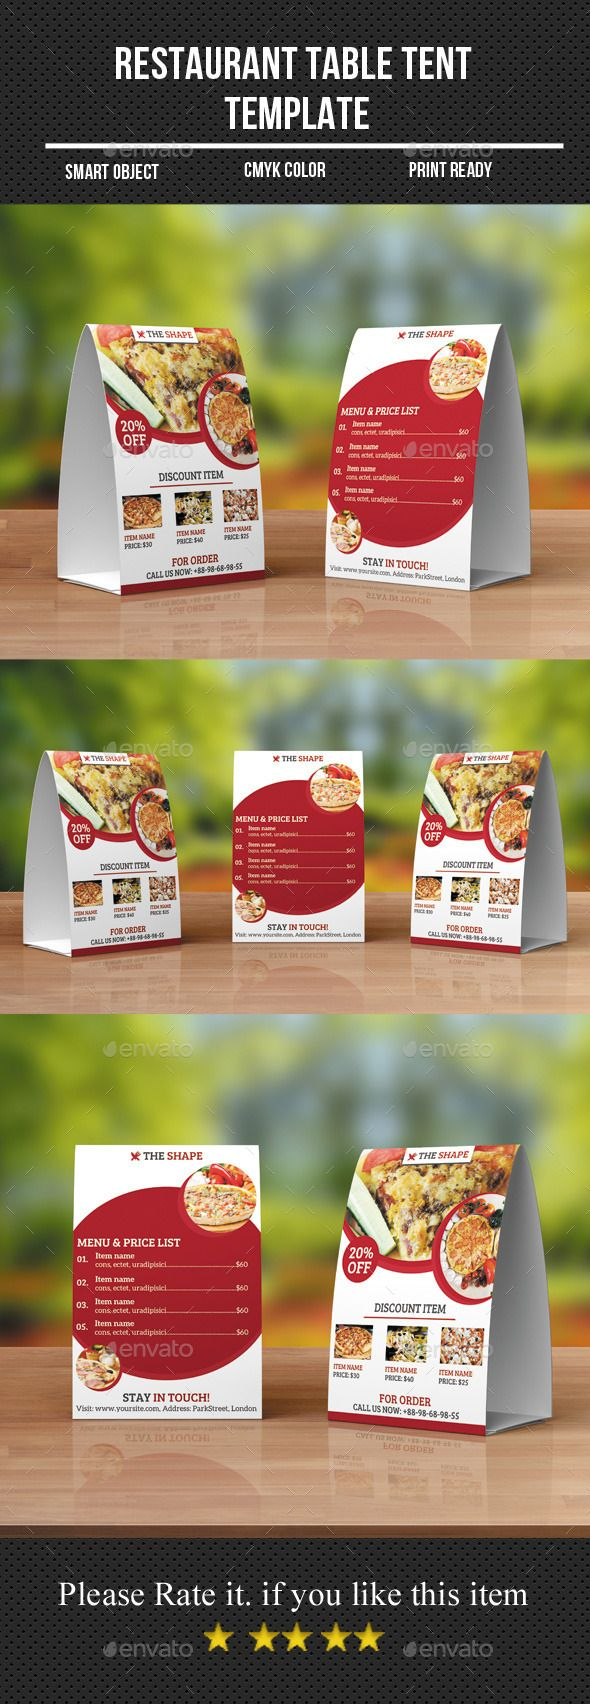 Restaurant Table Tent Template  Table Tents Menu Templates And